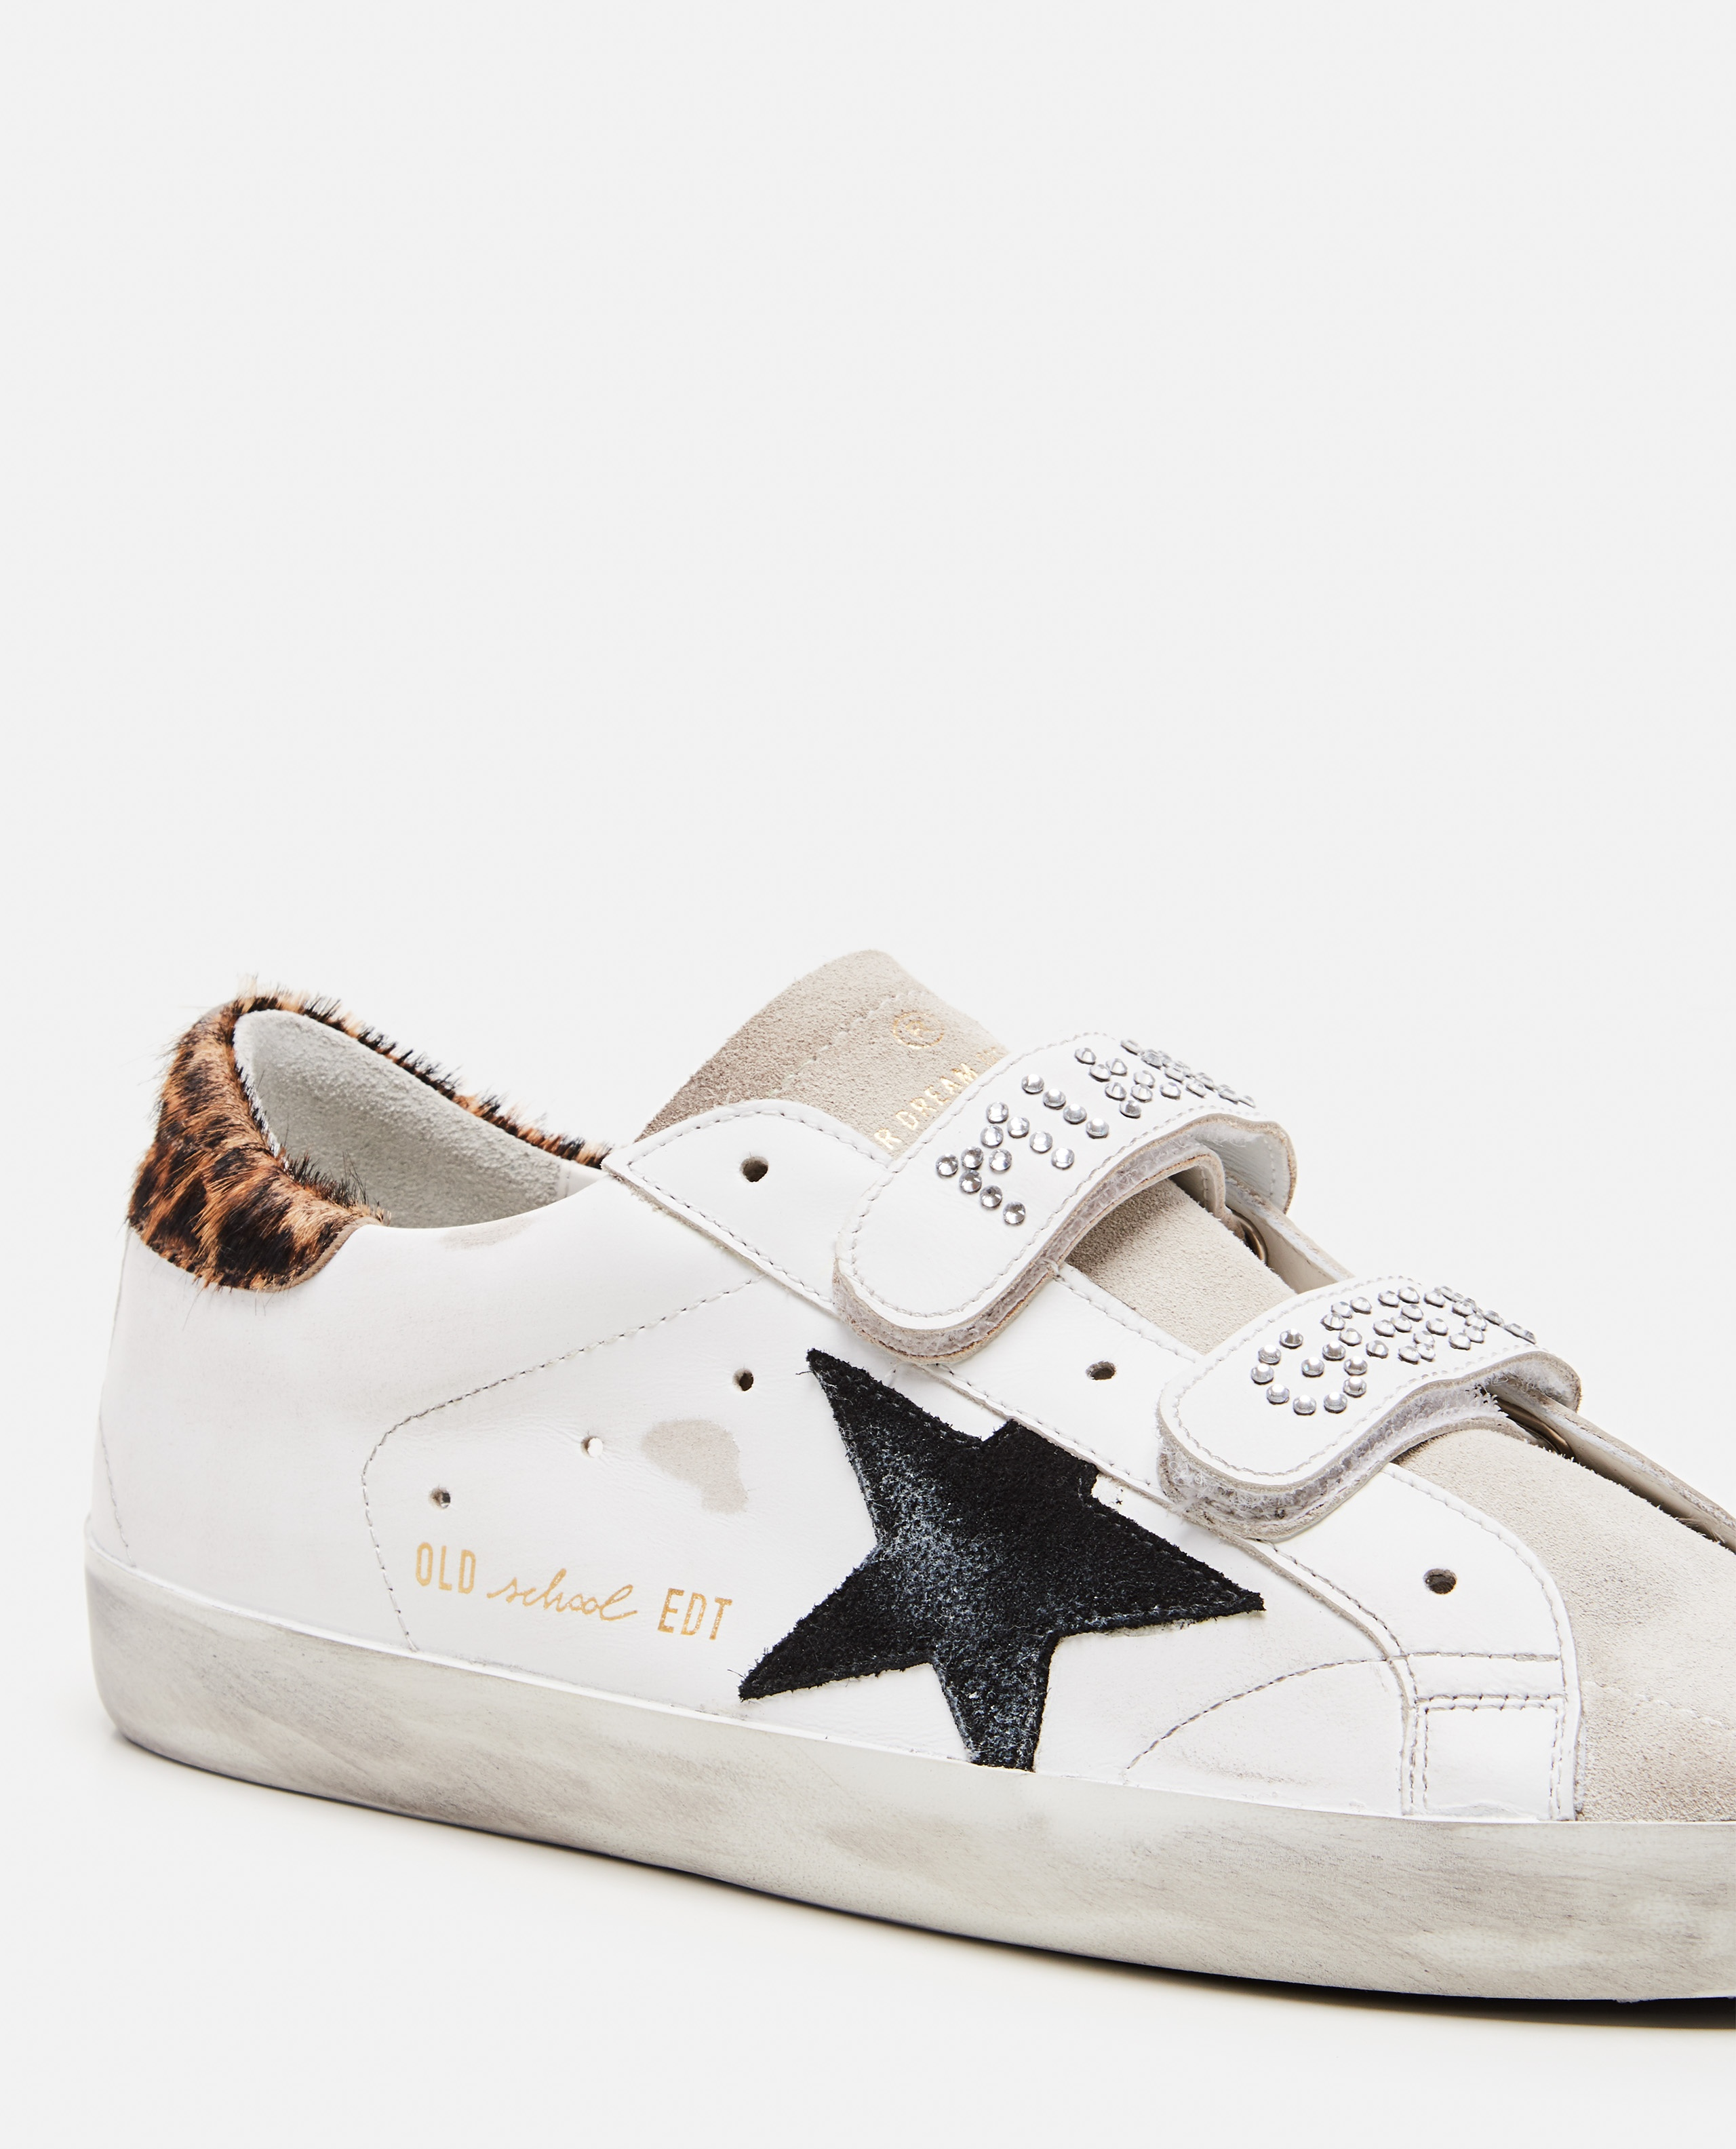 Sneaker  In Pelle Old School Donna Golden Goose 000286770042300 4